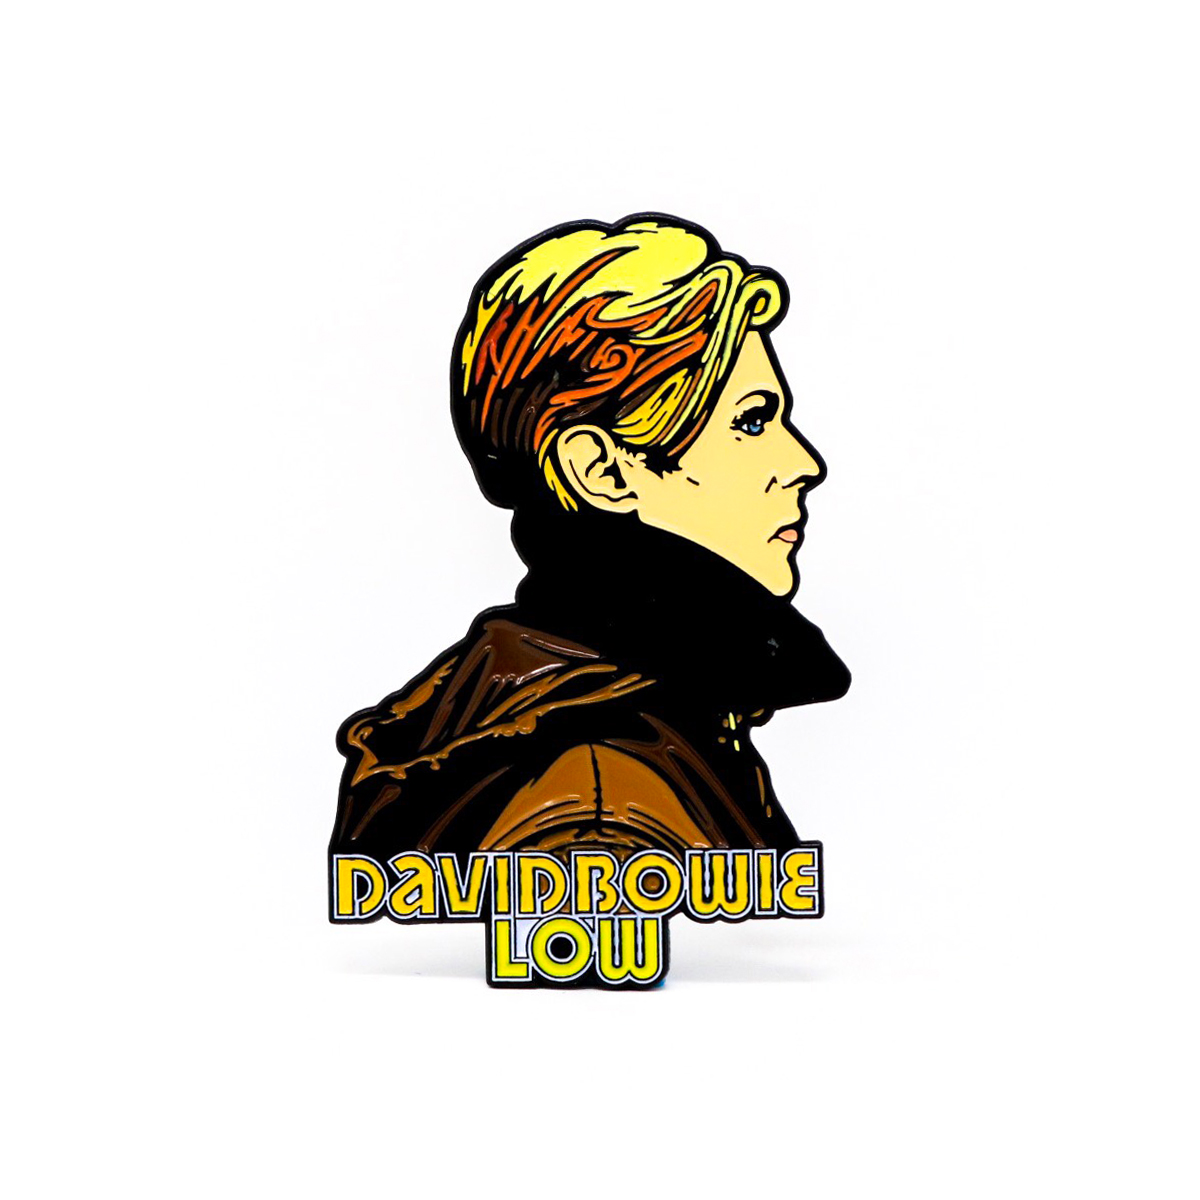 David Bowie Low Enamel Pin